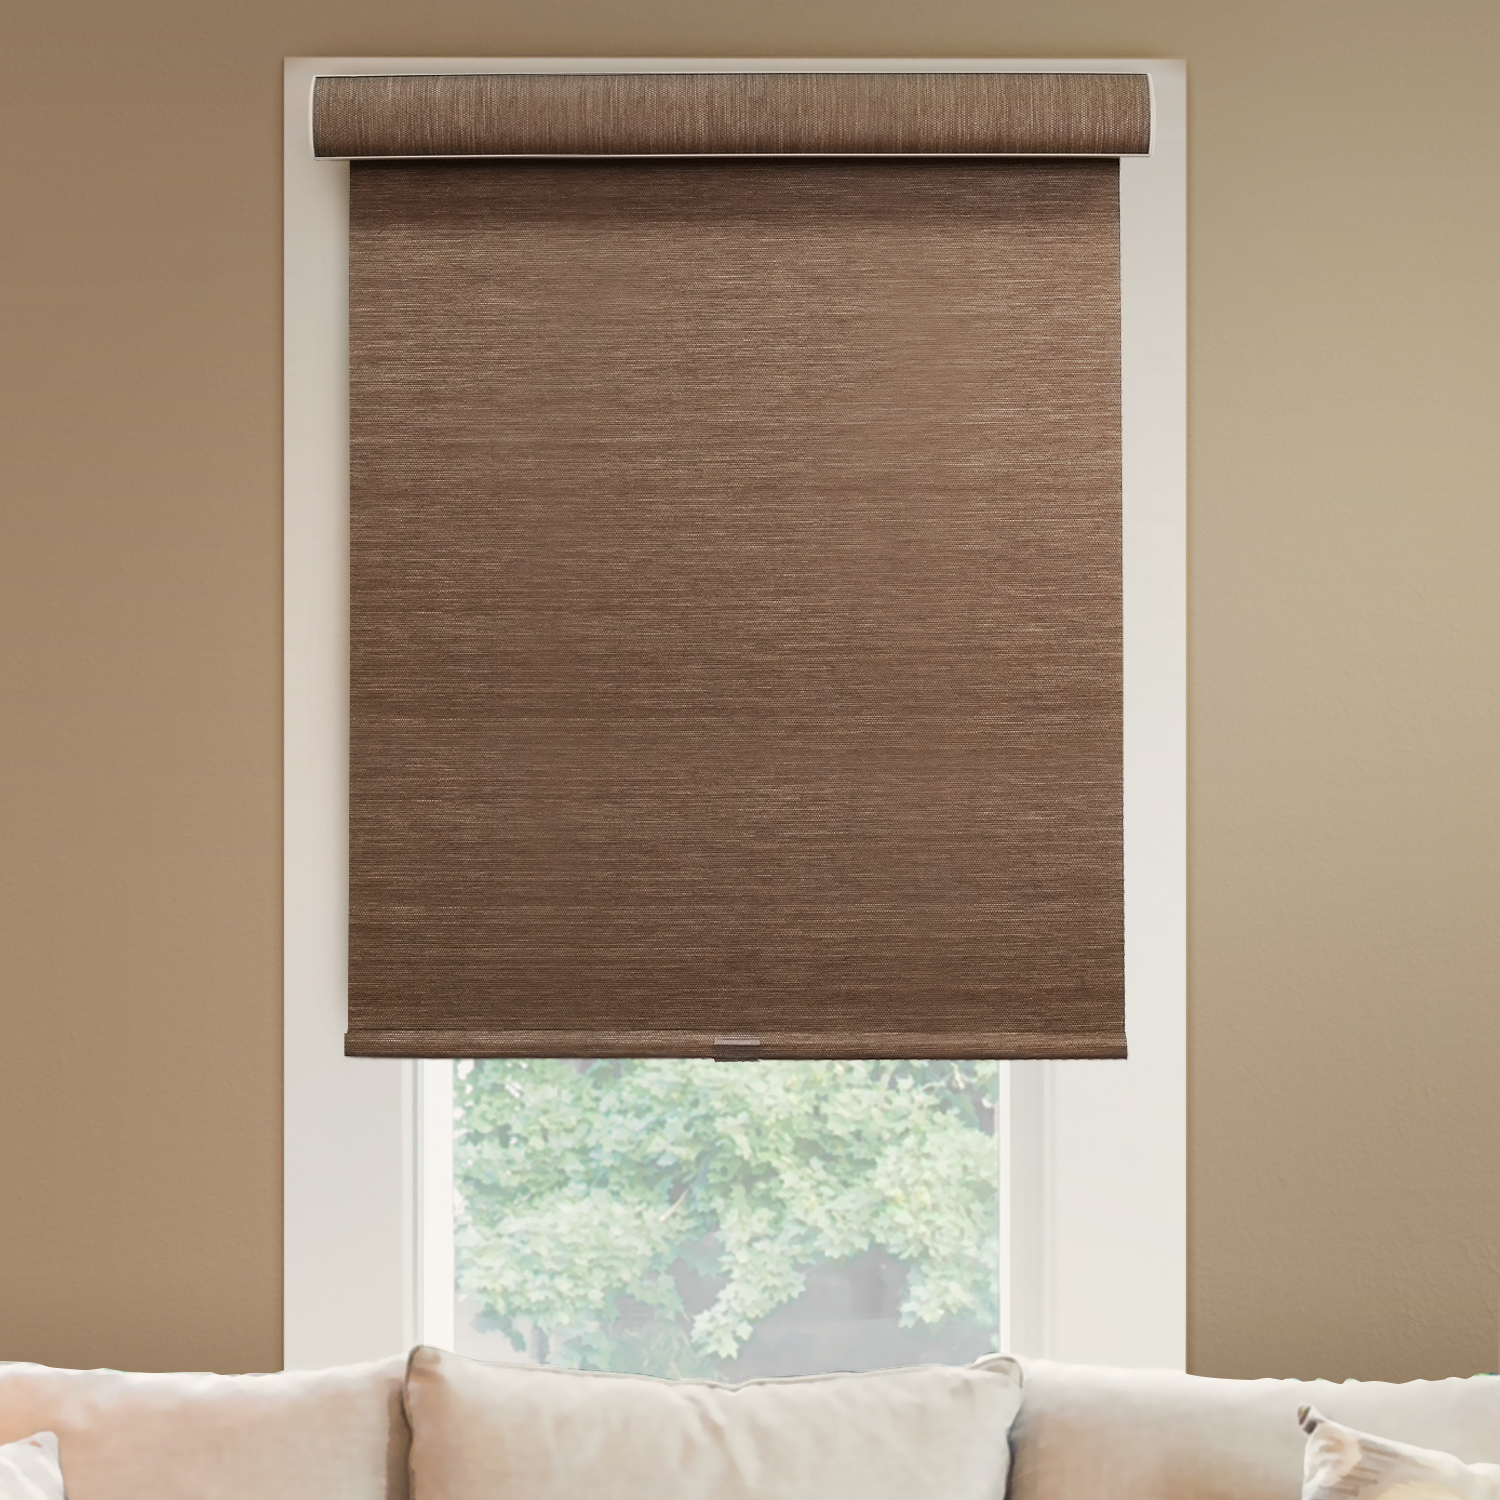 "Chicology Deluxe Free-Stop Cordless Roller Shades, No Tug Privacy Window Blind, Felton Truffle (Privacy & Natural Woven) - 20""W X 72""H"